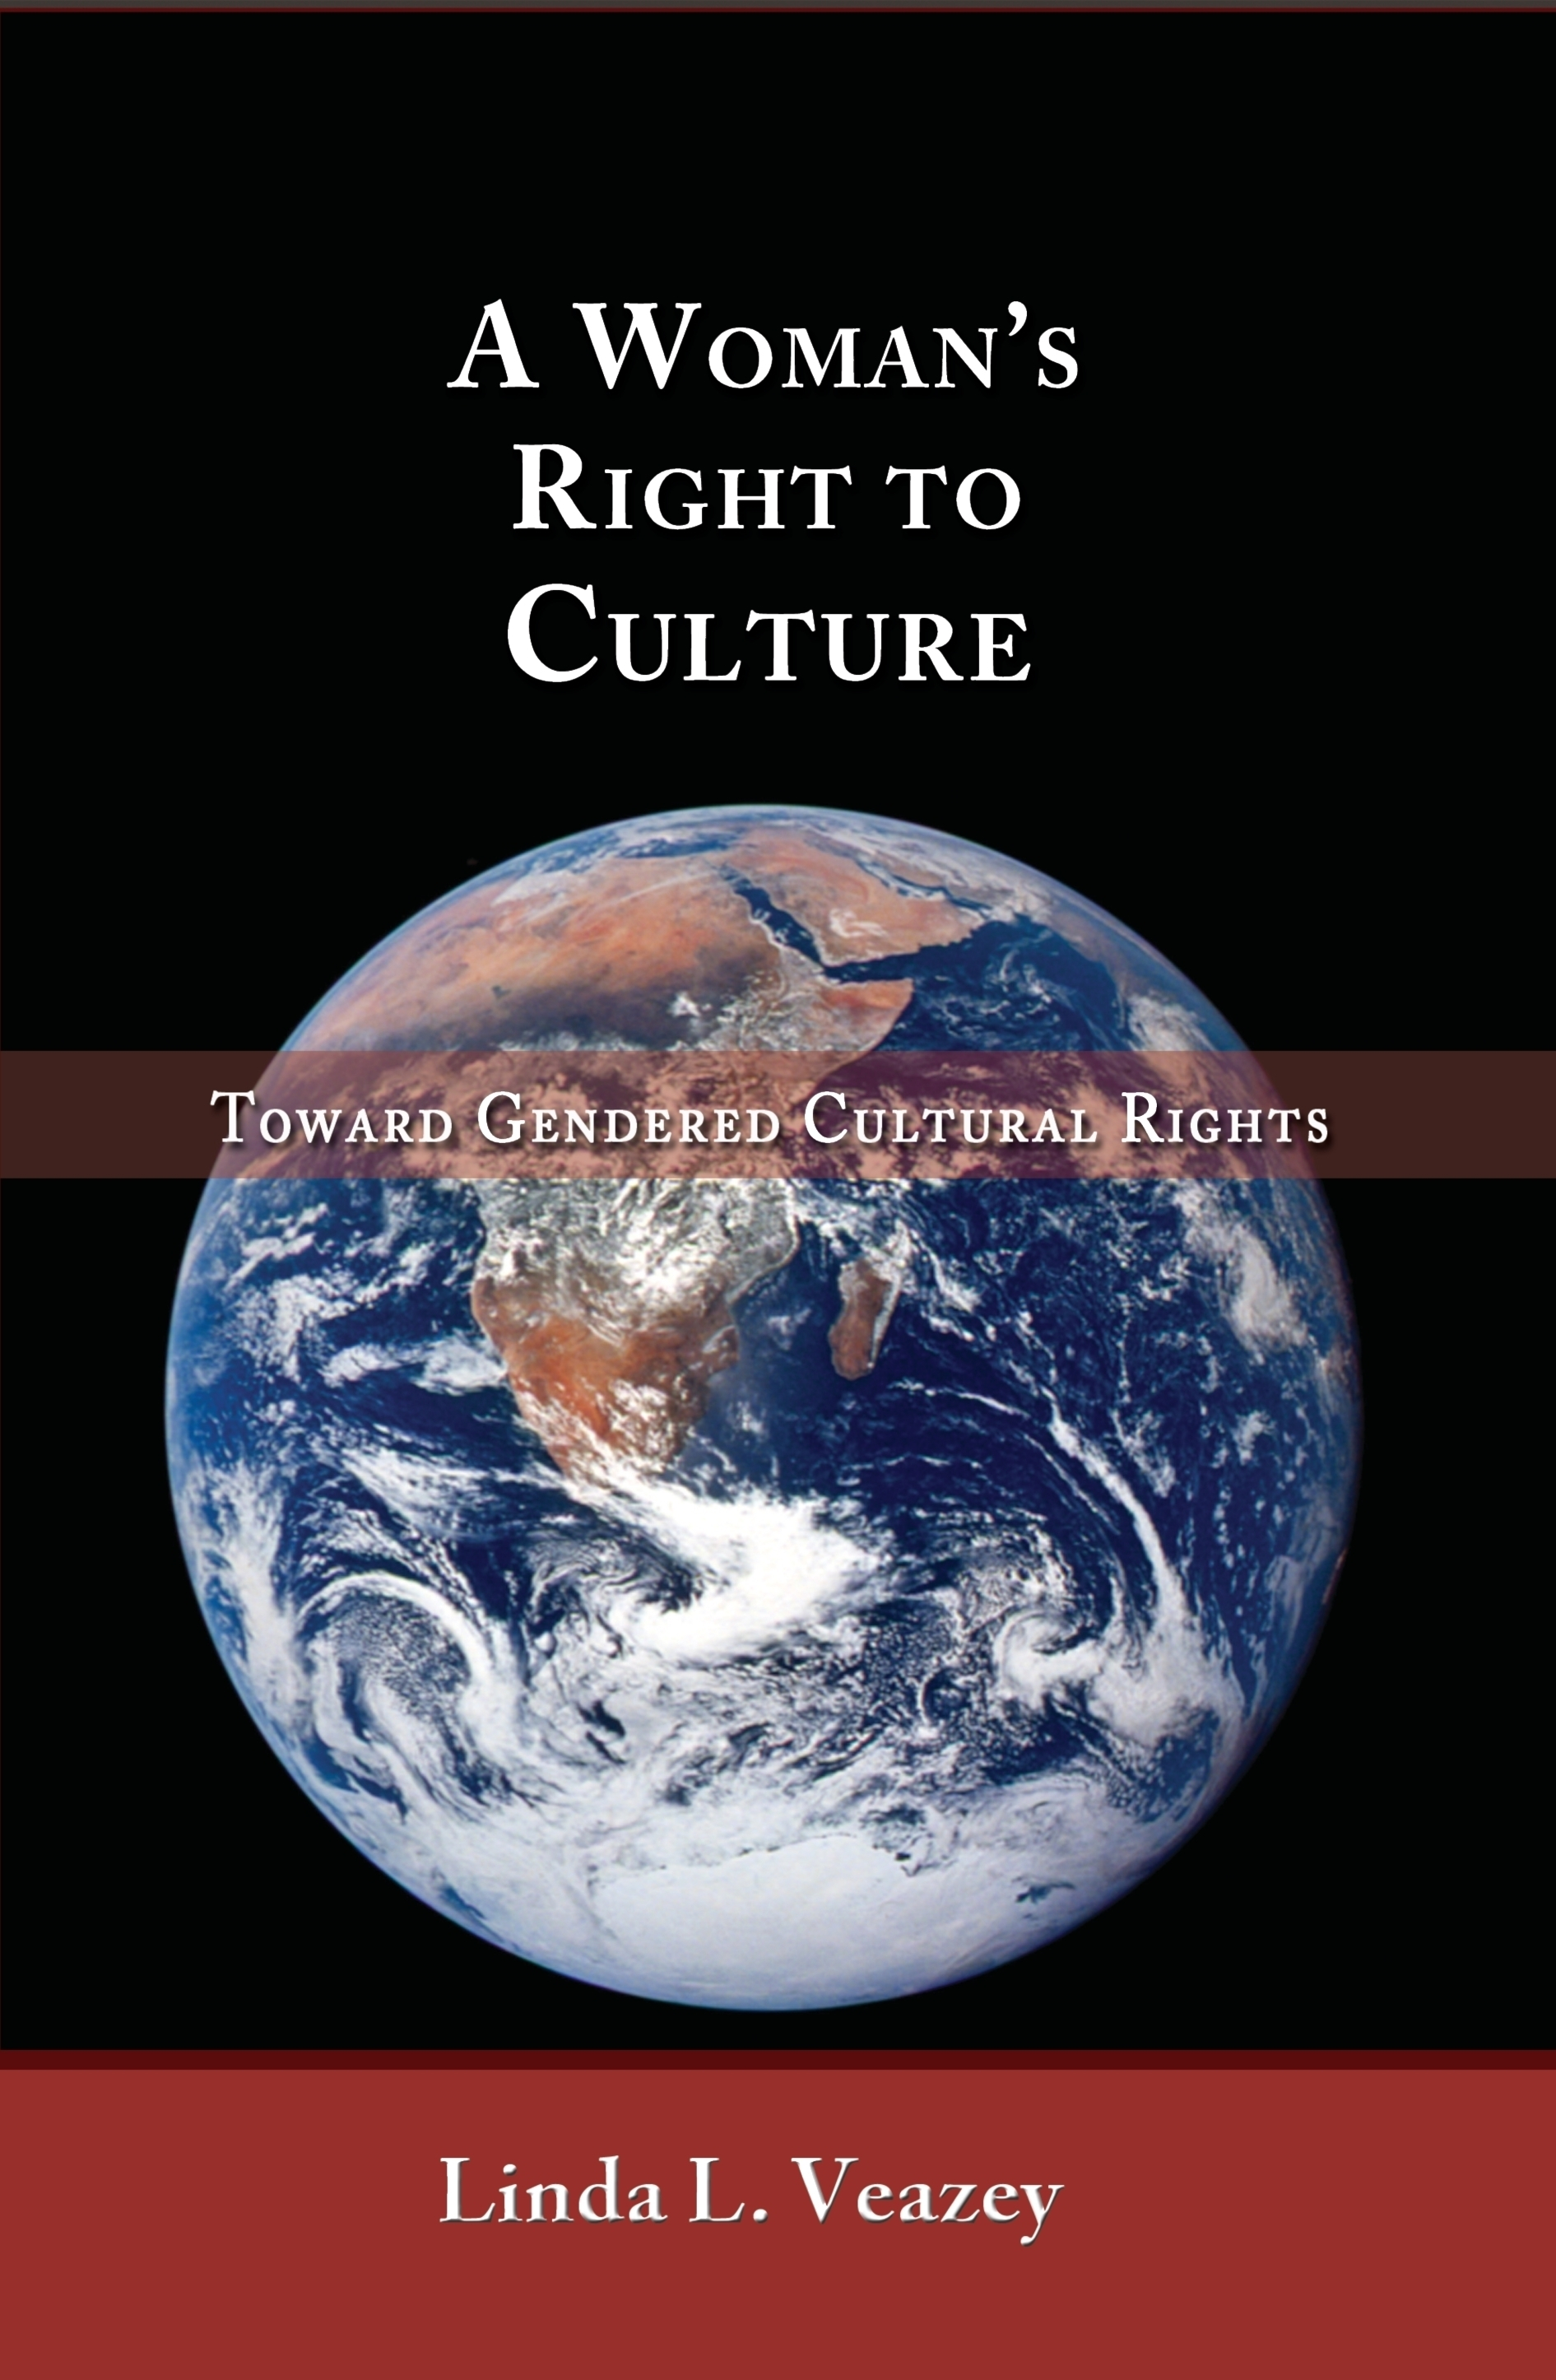 A Womans Right to Culture: Toward Gendered Cultural Rights  by  Linda L. Veazey